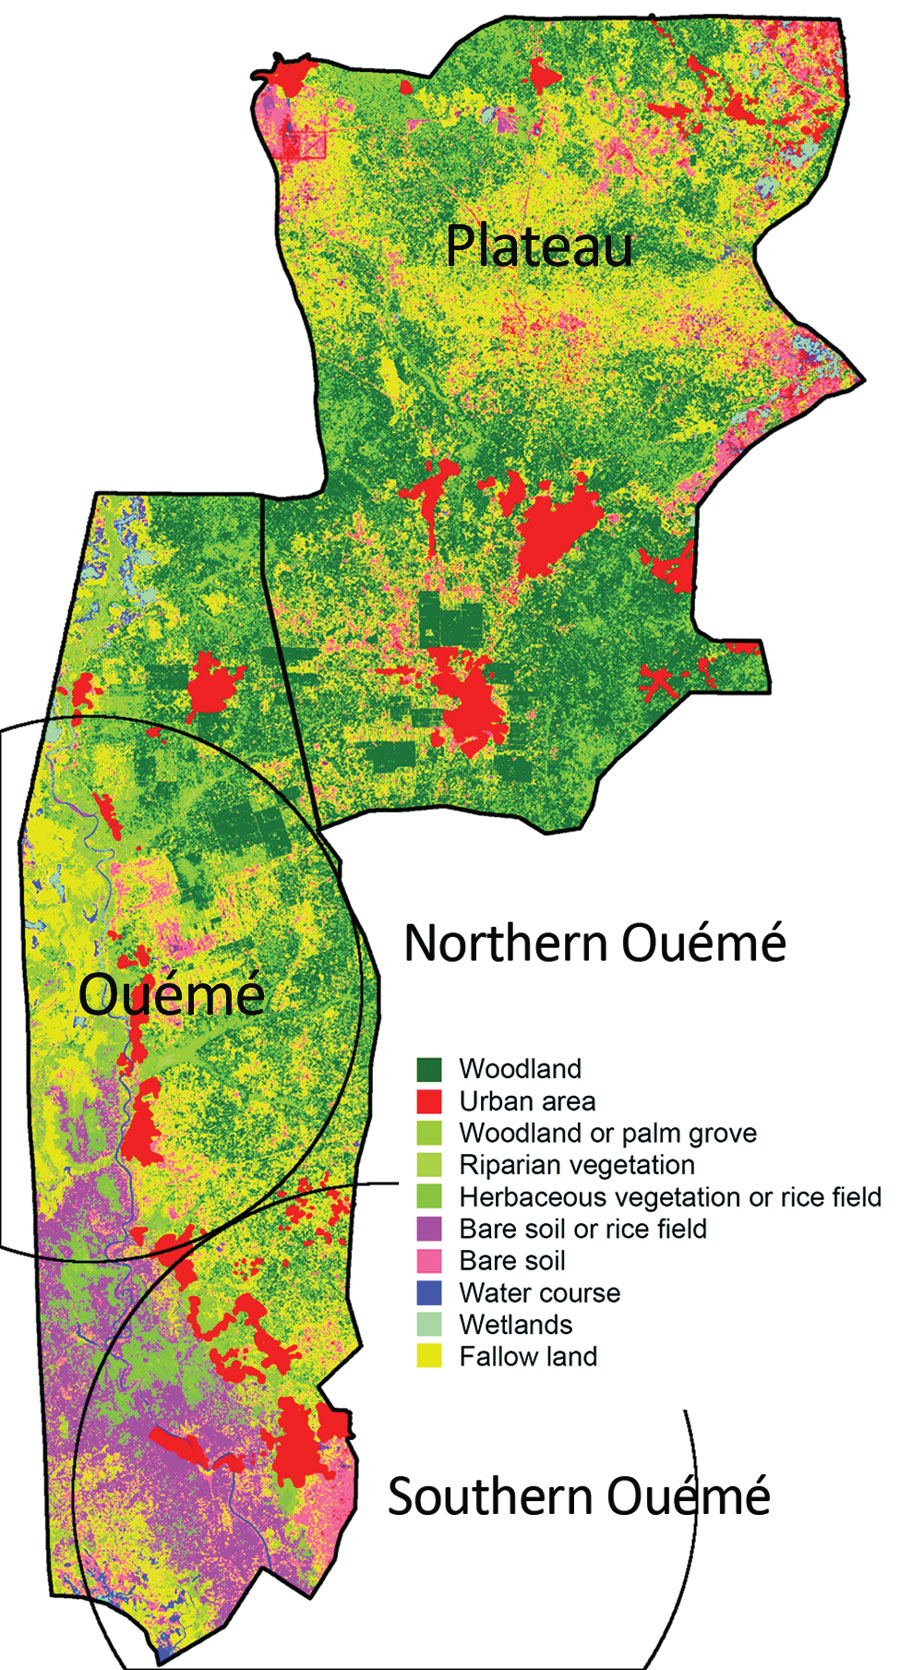 Land use and land cover assessment from Sentinel-2 imaging of Benin. The Ouémé region has specific land and plant formations, such as grassy savanna, grasslands, and swamps. Soils easily become saturated with water because of a shallow water table and the proximity of a river, which causes floods and a natural delta formation in the south of the region. Circles indicate the detected northern and southern Ouémé Mycobacterium ulcerans clusters.